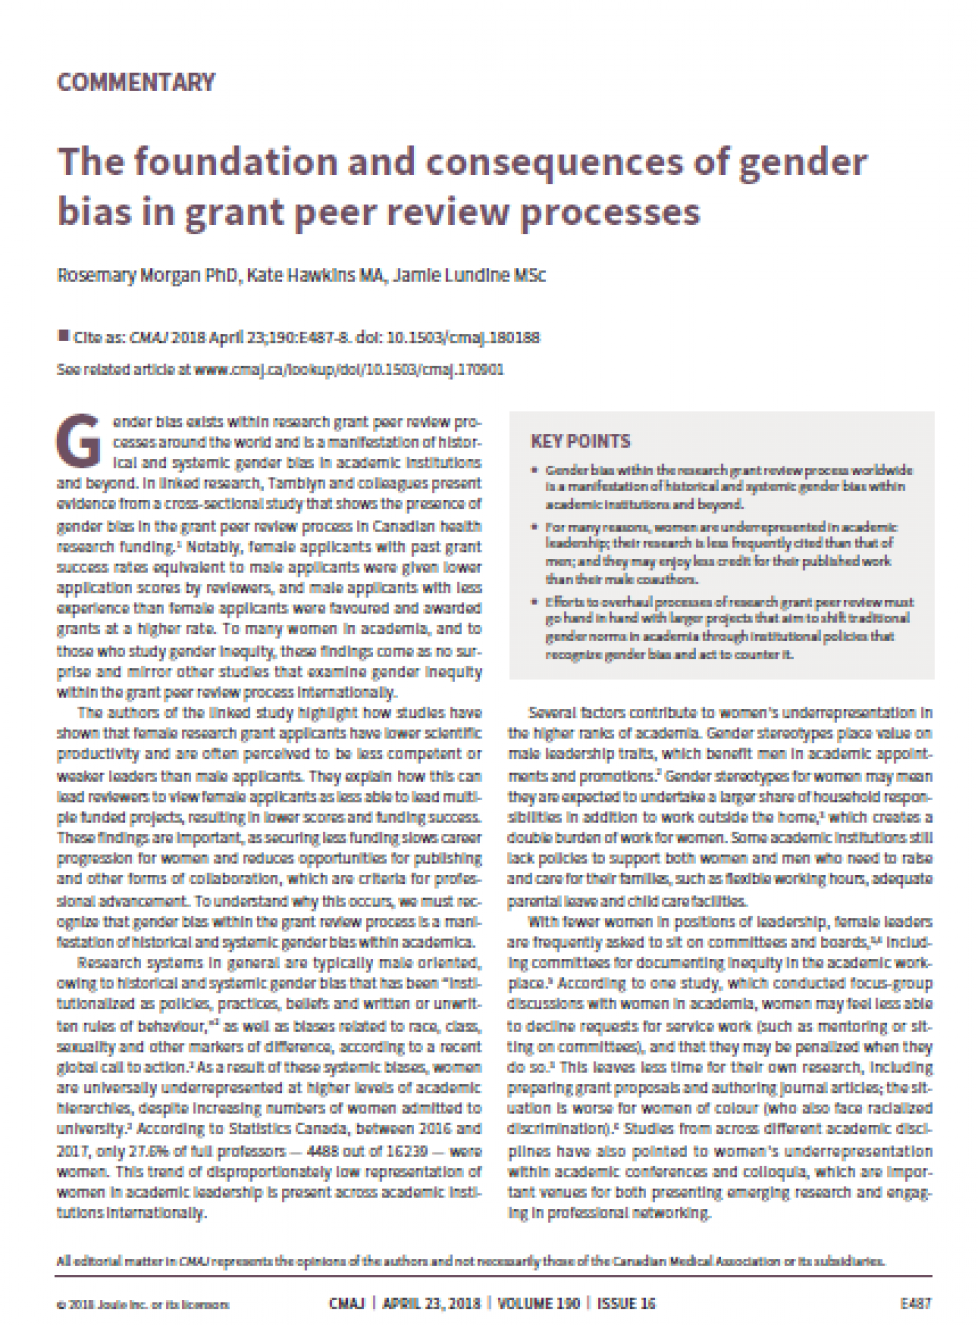 Front page of paper on Consequences gender bias in peer review